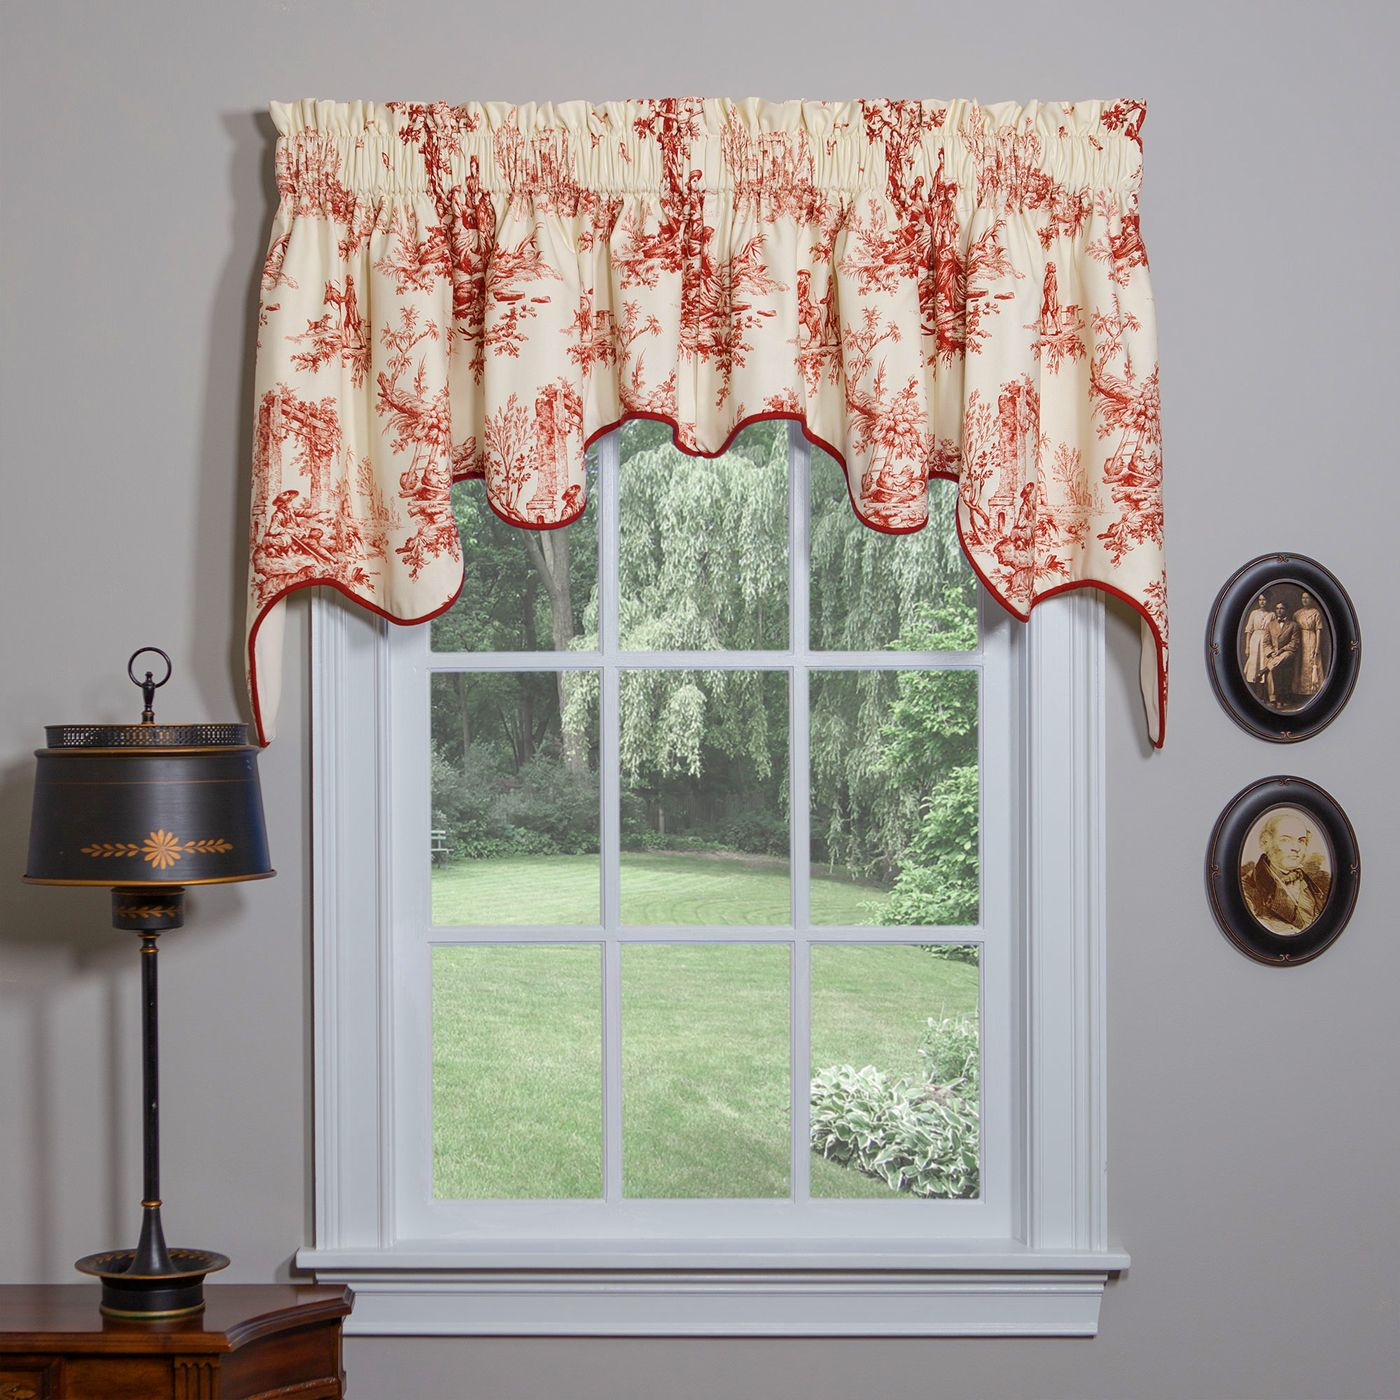 Swag Curtains: Solid, Patterned, Sheer regarding Maize Vertical Ruffled Waterfall Valance And Curtain Tiers (Image 11 of 20)